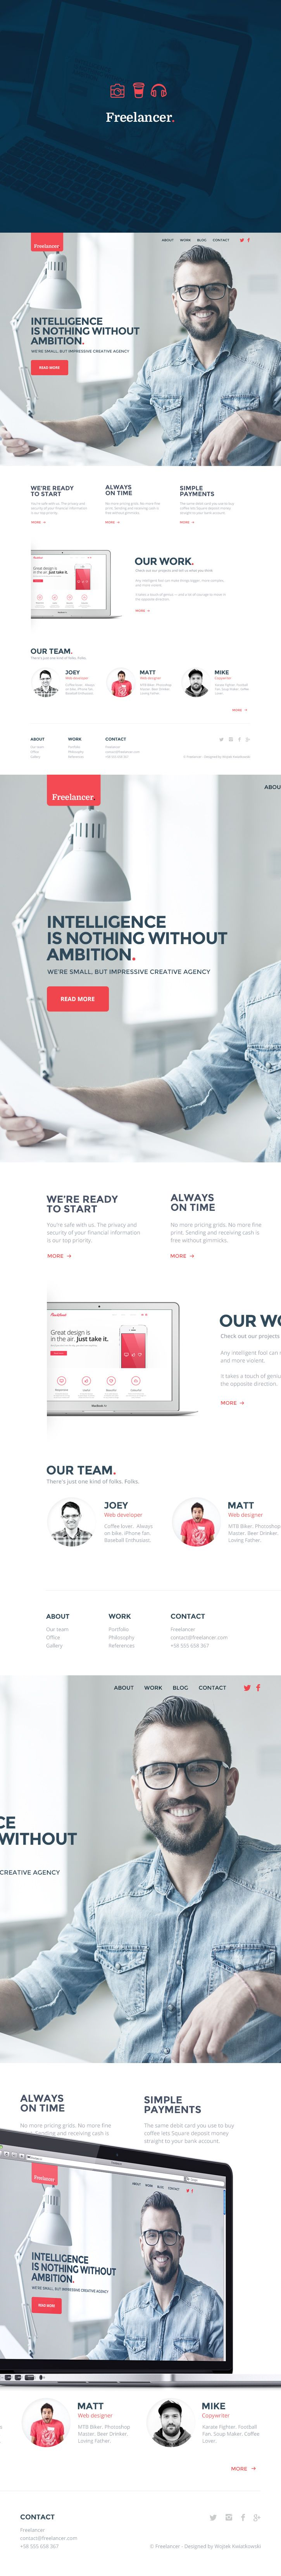 nice & clean #ResponsiveDesign #Responsive #Design #WebDesign #UI #UX #GUI #Brand #marketing